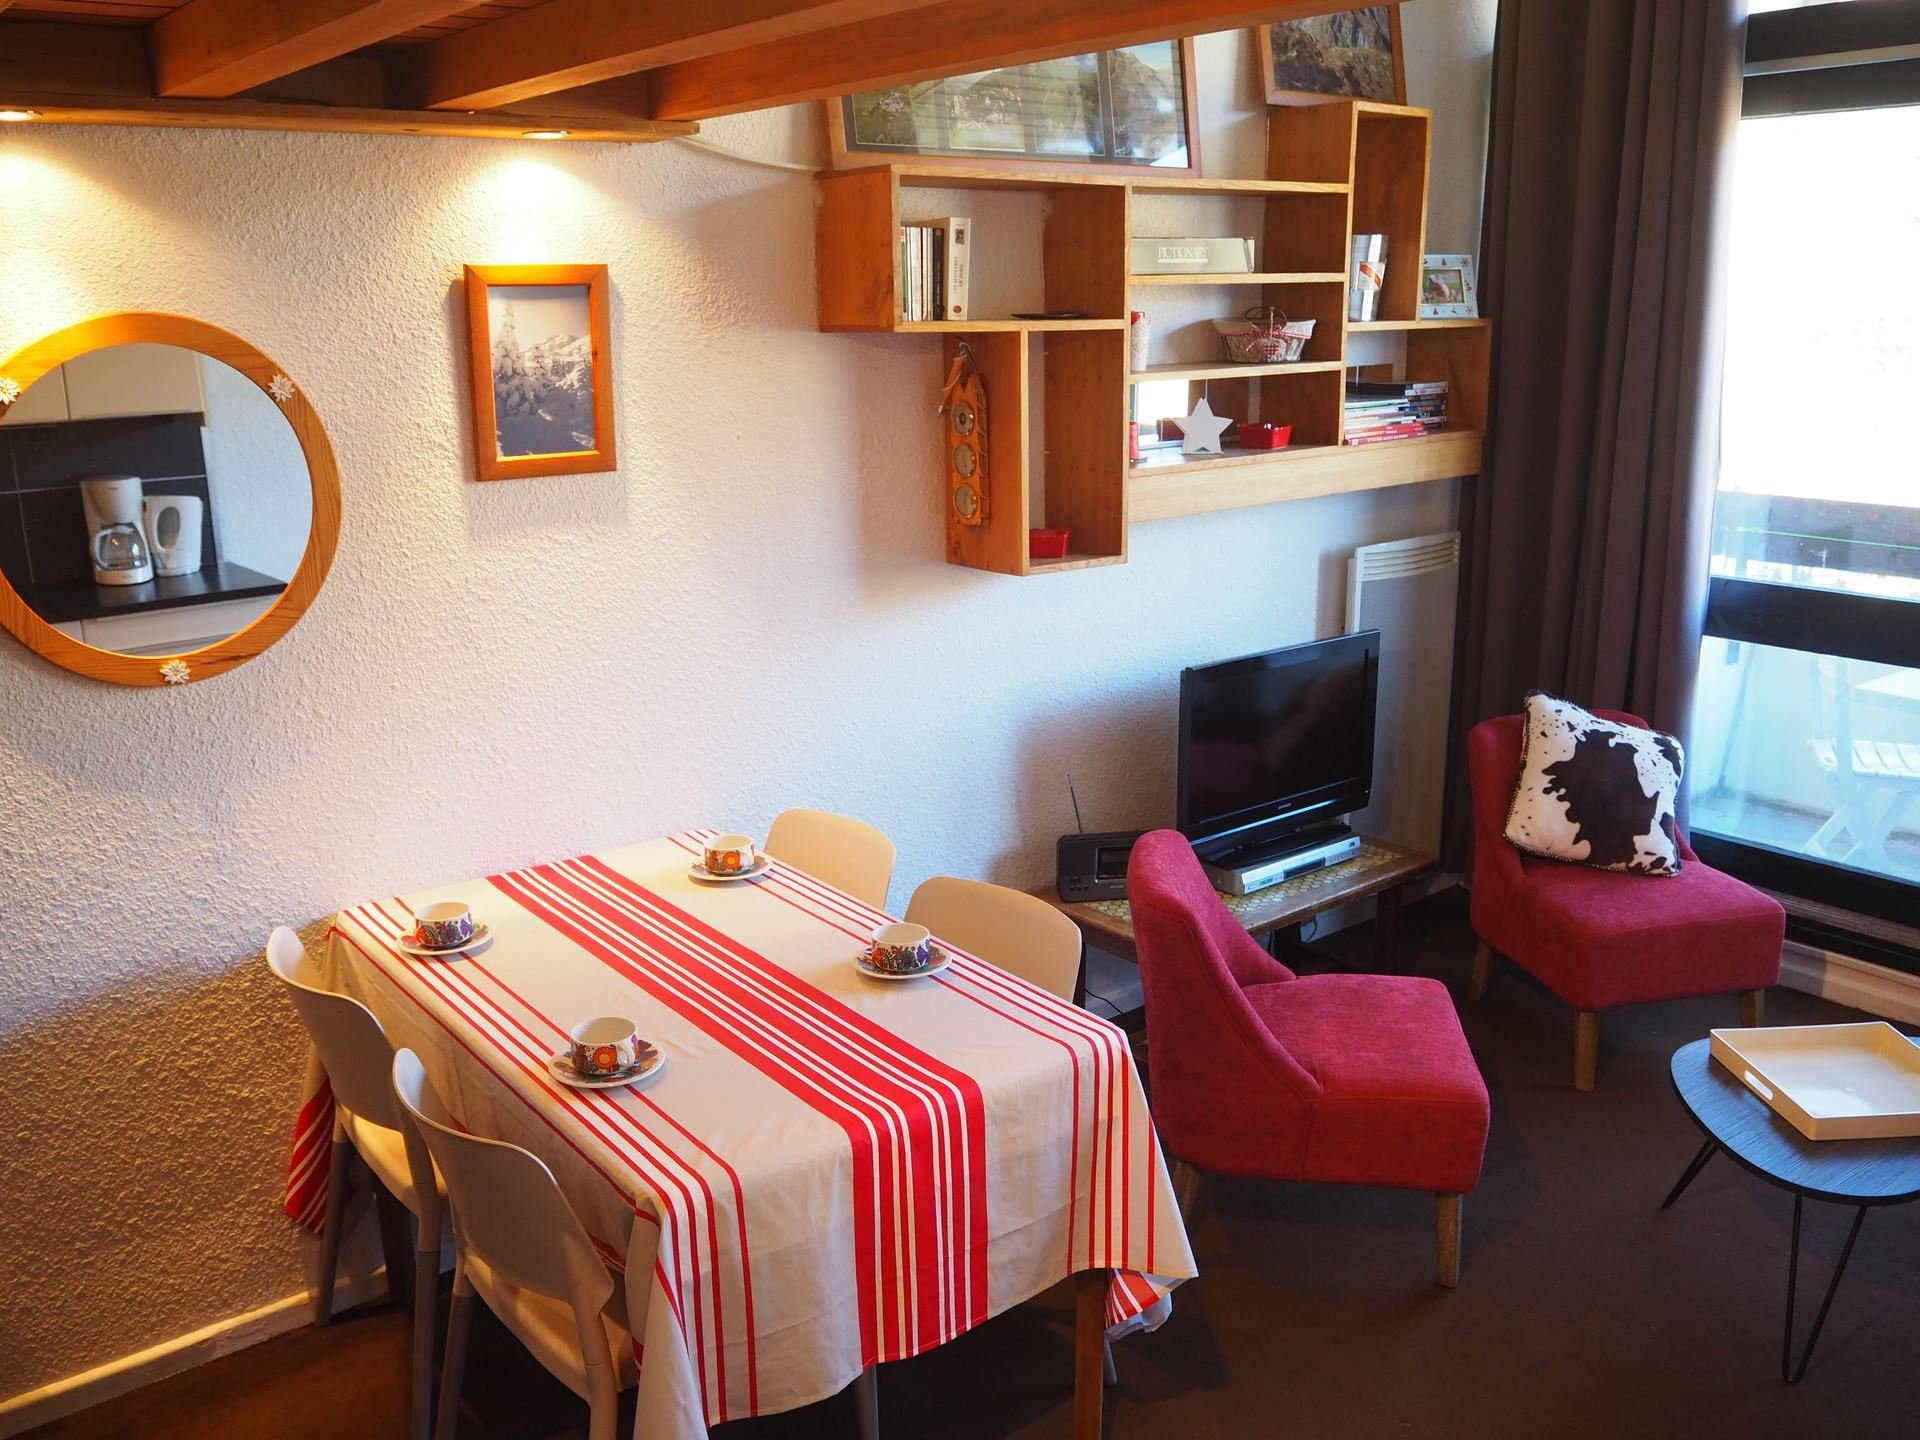 2 Room 4 Pers ski-in ski-out / Nant Benoit 720